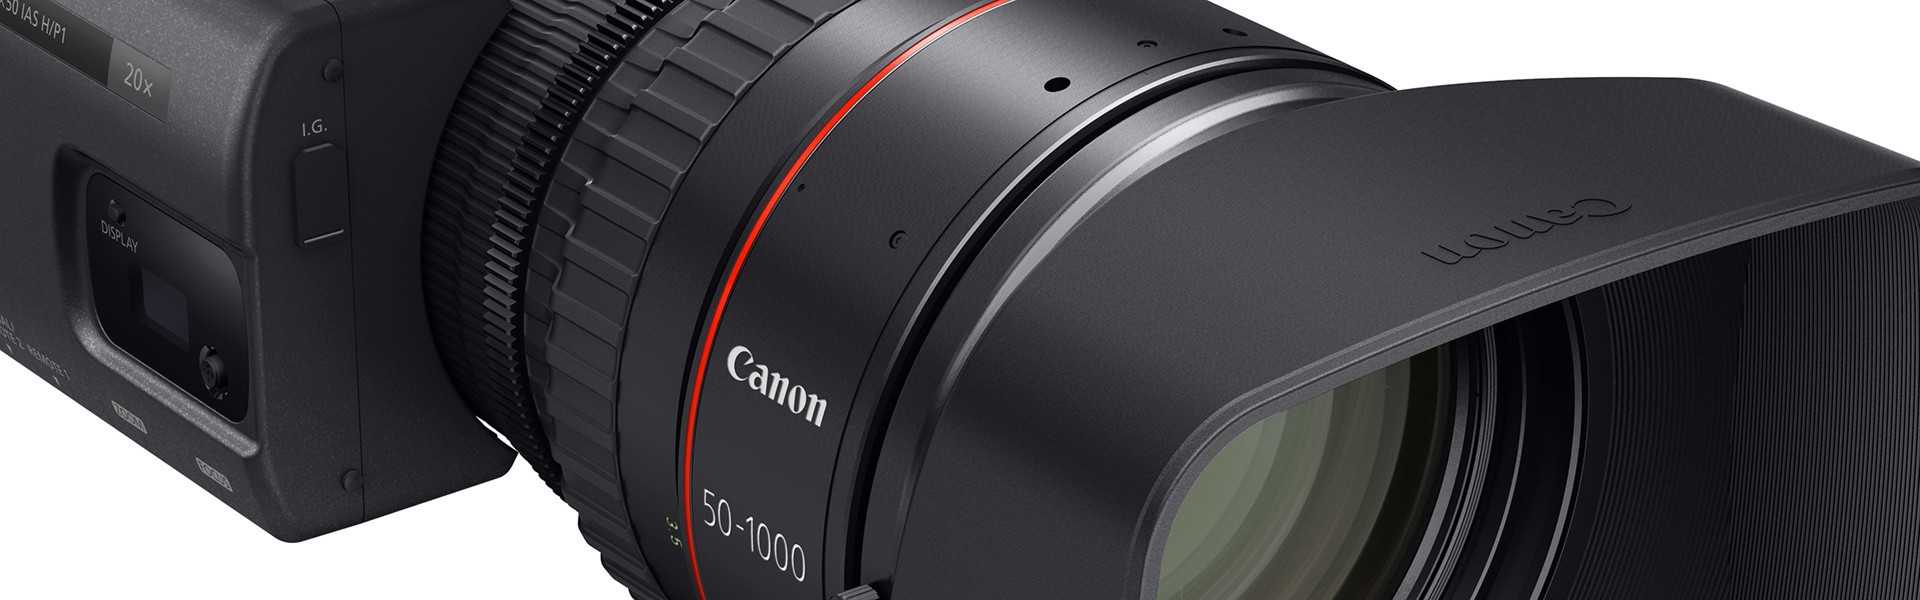 Header image for article Canon Introduces New CN20x50 50-1000 Cine-Servo Zoom Lens